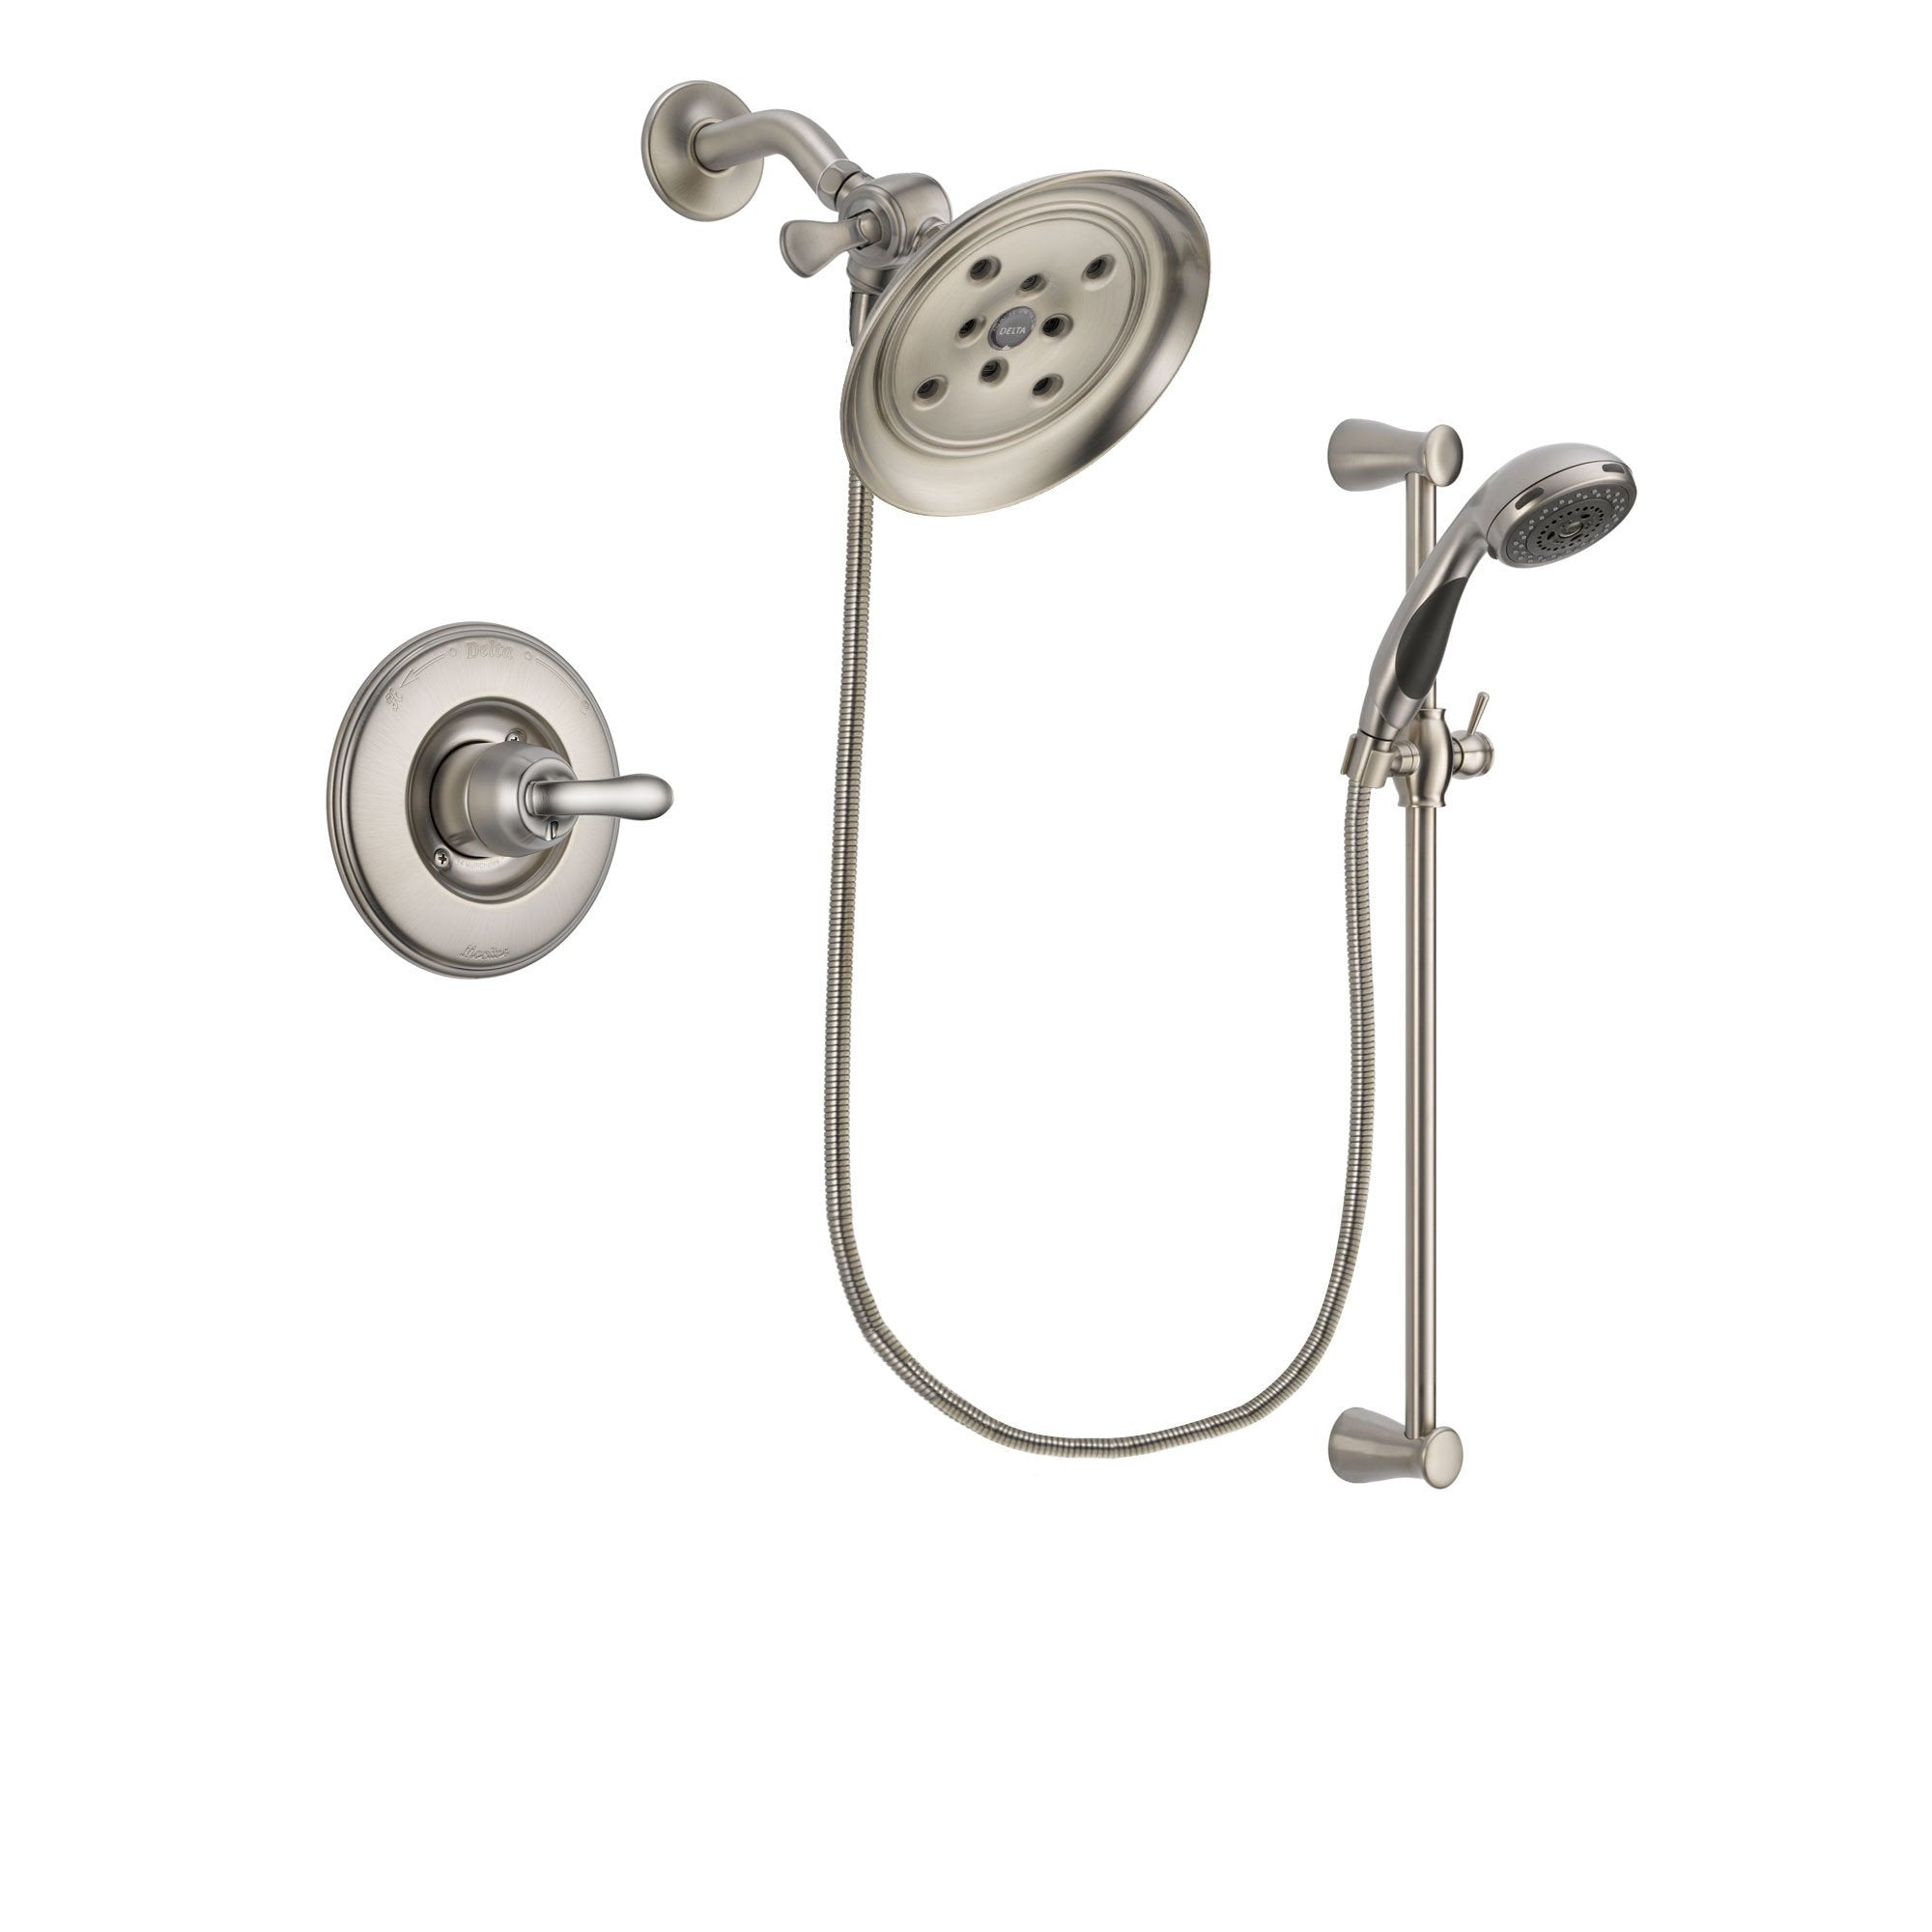 Delta Linden Stainless Steel Finish Shower Faucet System w/ Hand Spray DSP1600V